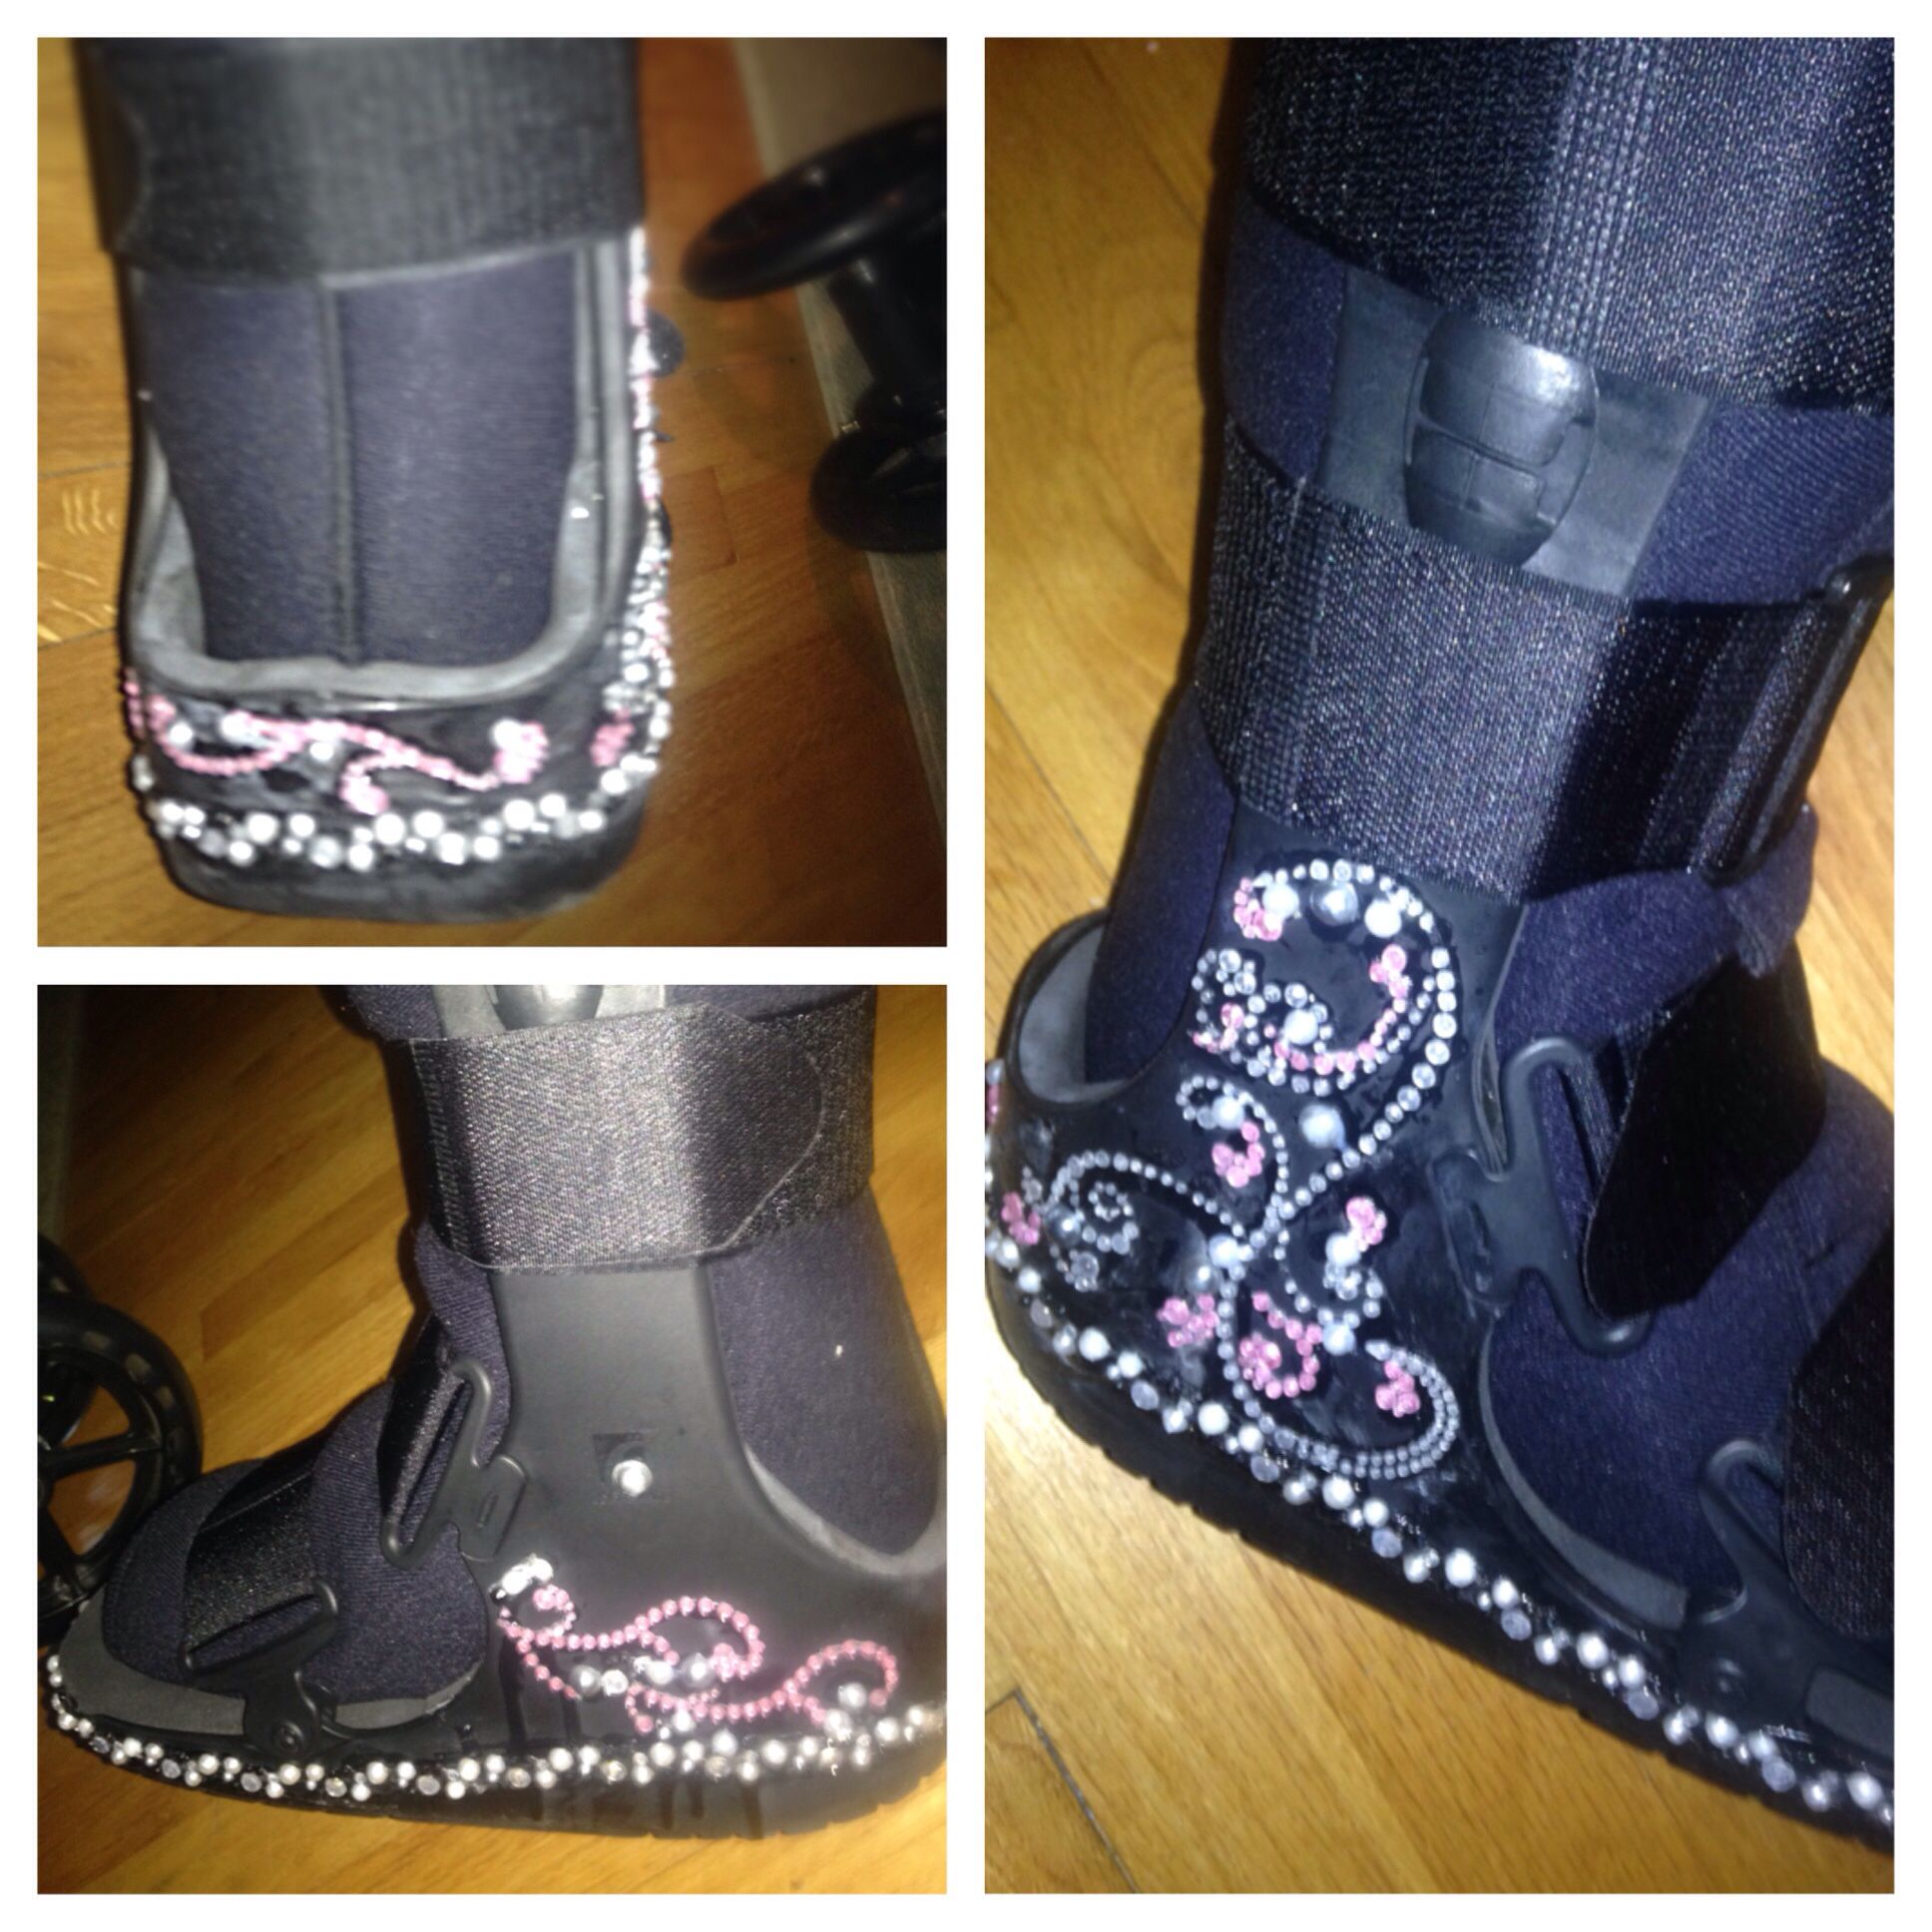 bejeweled boot cast (cam boot) diy peel n stick reinforce with